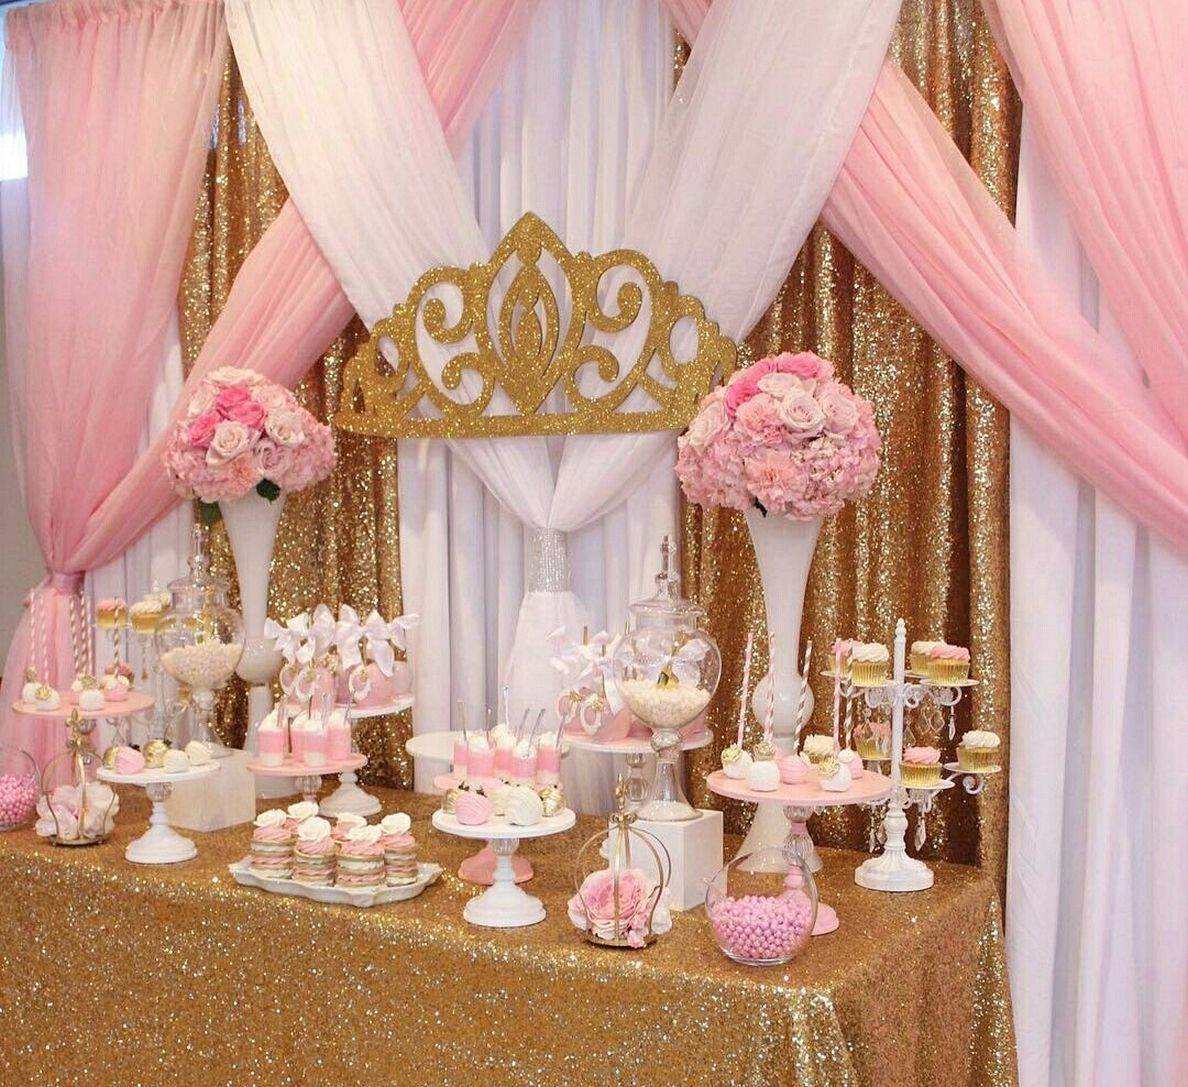 Best ideas about Decorations For 15 Birthday Party . Save or Pin Best 100 Quince Decorations Ideas for Your Party Now.